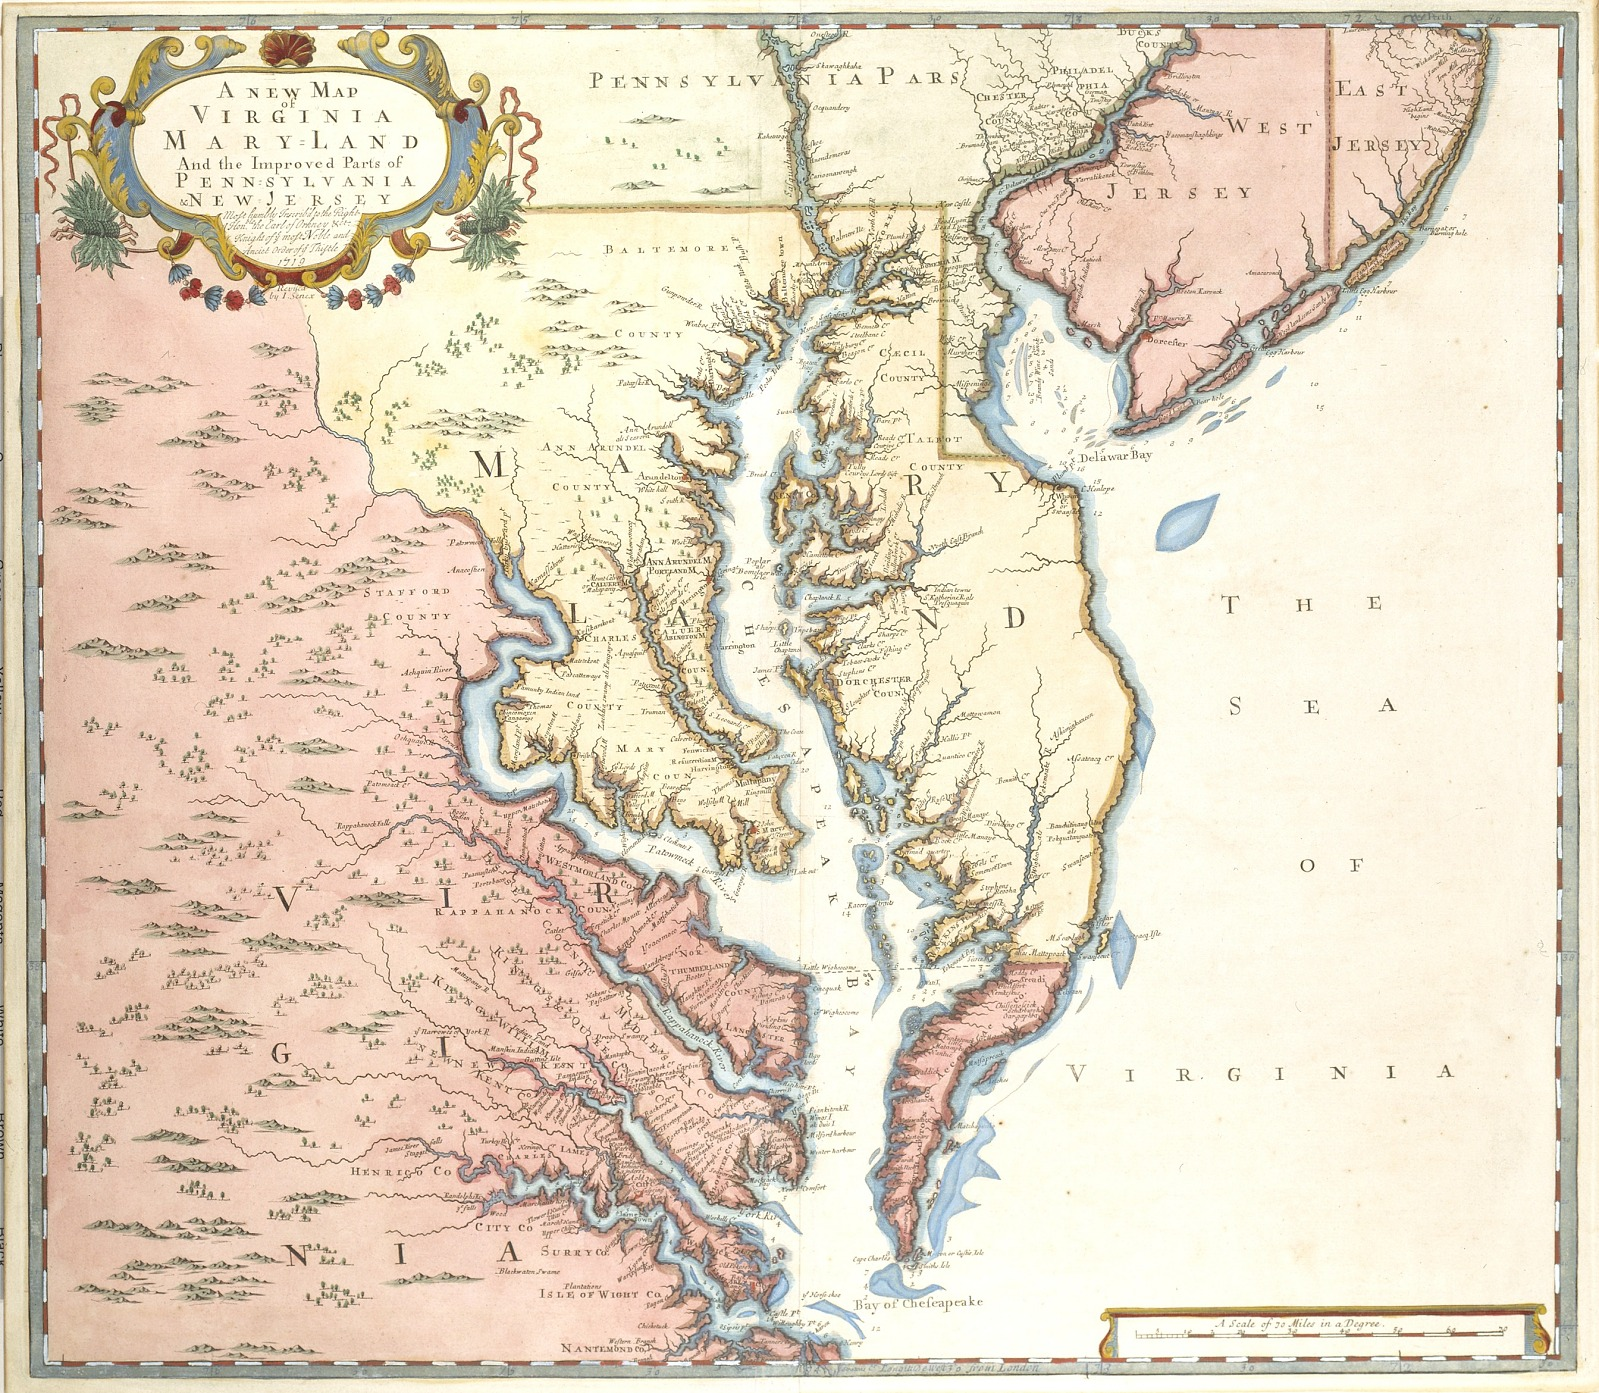 Resources A New Map Of Virginia And Maryland And The Improved